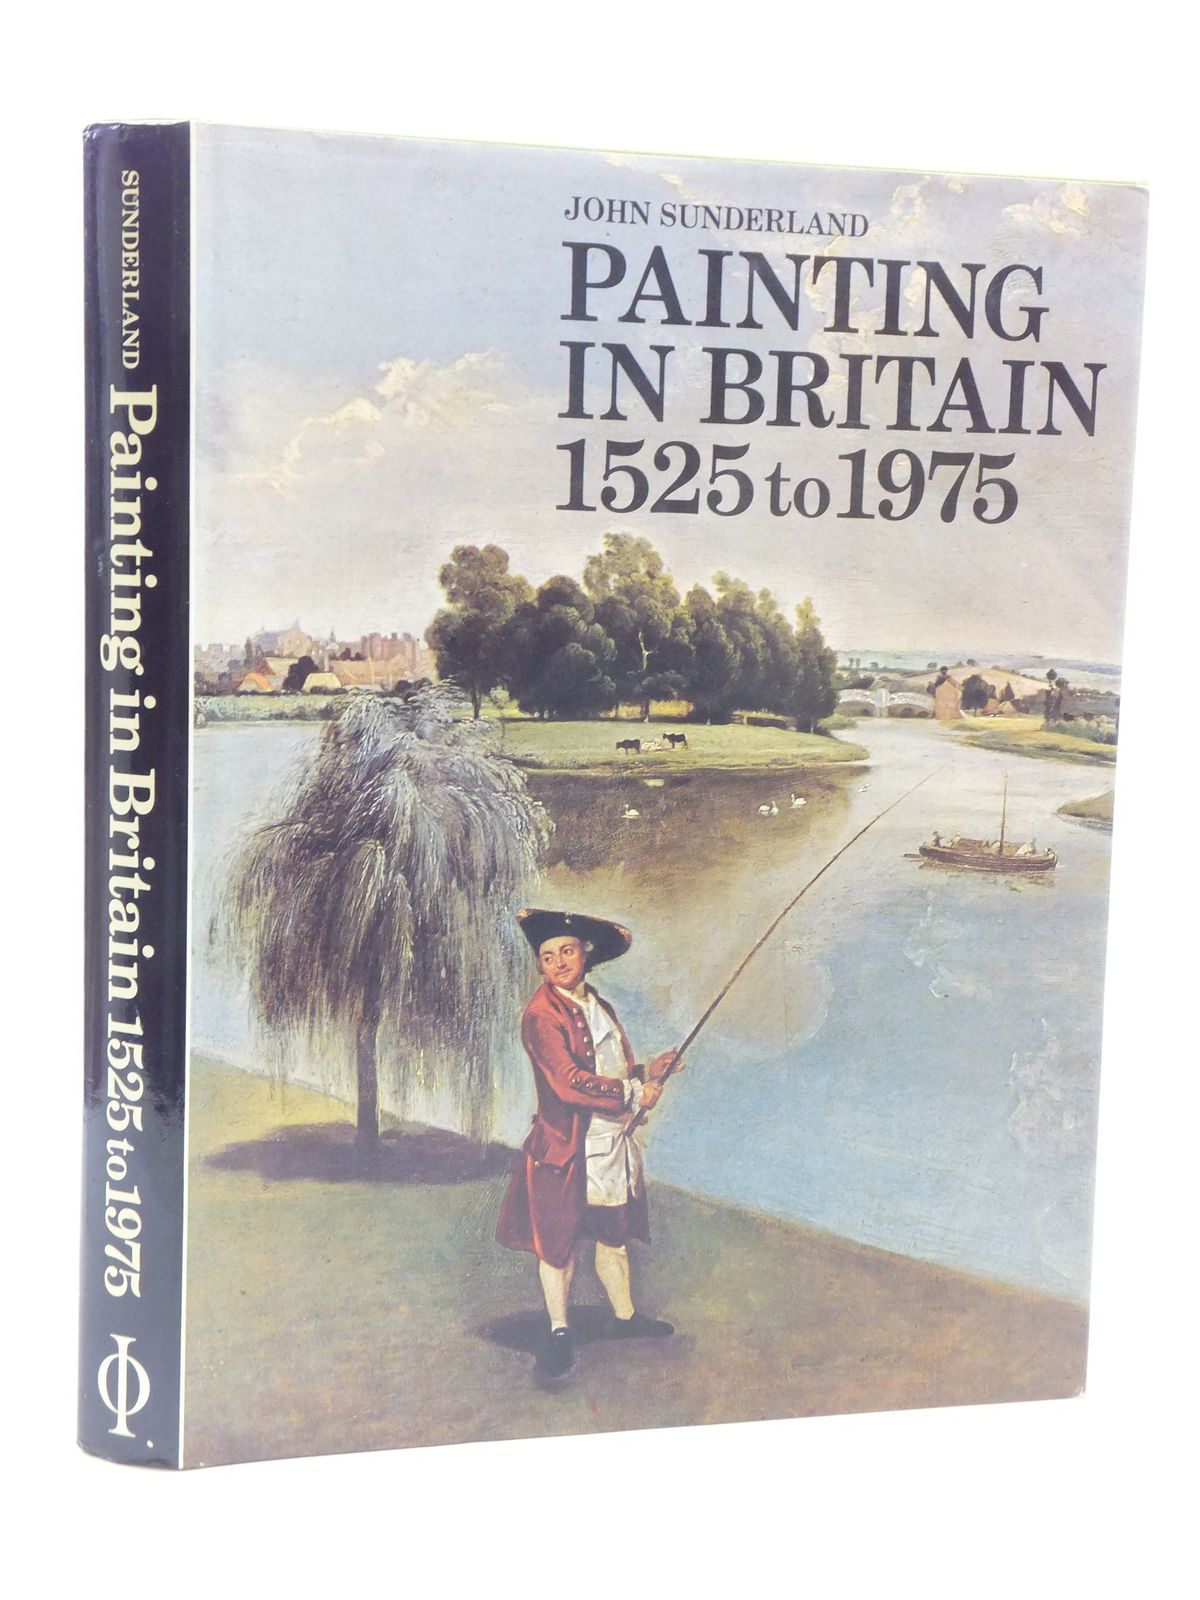 Photo of PAINTING IN BRITAIN 1525 TO 1975 written by Sunderland, John published by Phaidon (STOCK CODE: 1604969)  for sale by Stella & Rose's Books